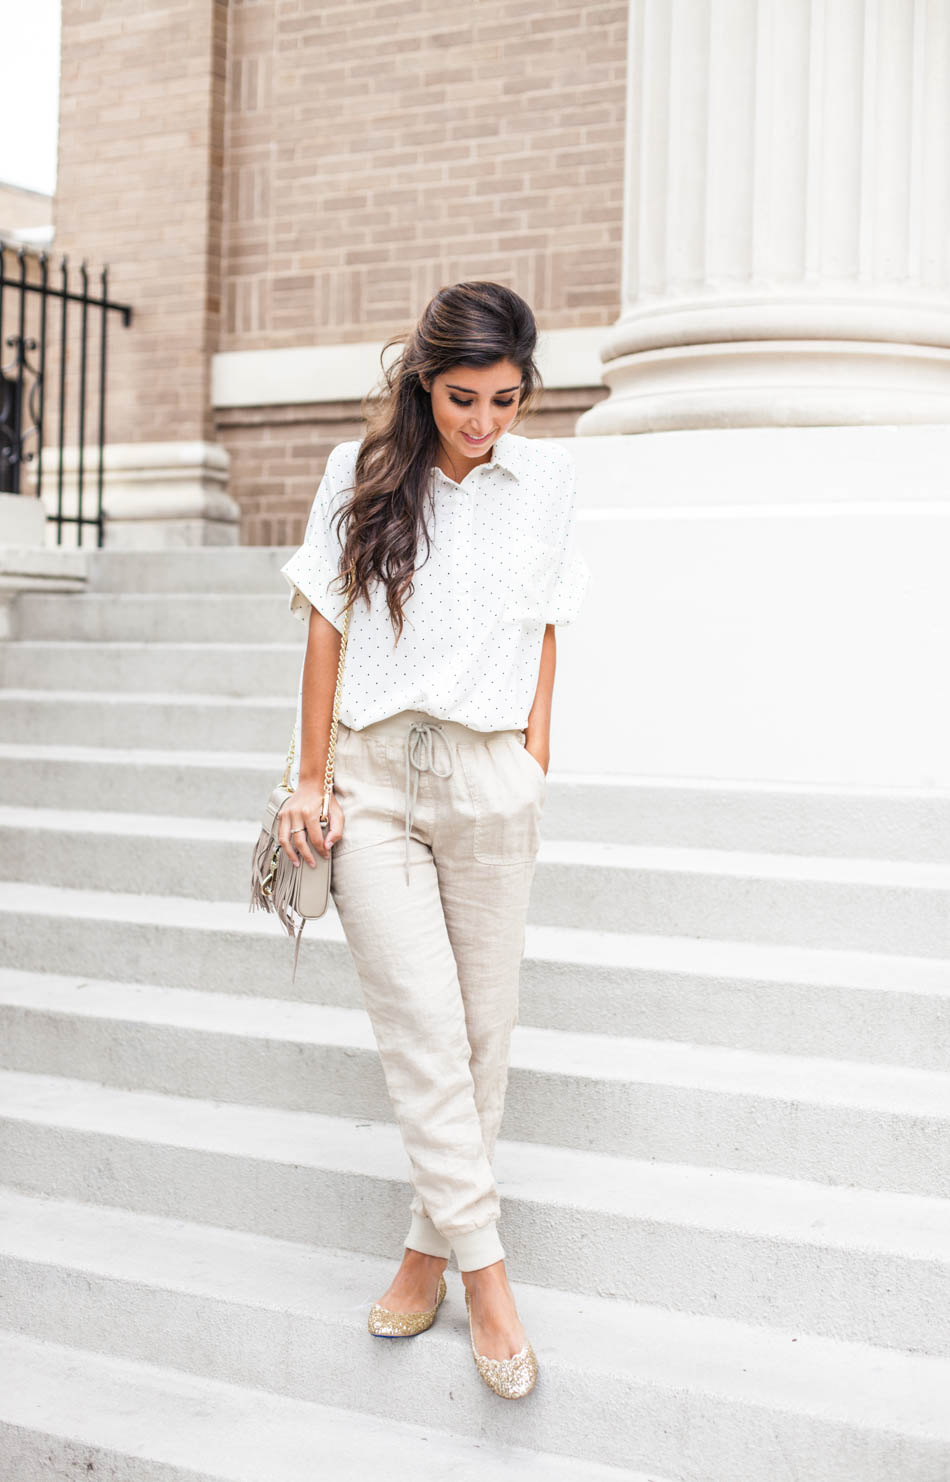 Casual Chic - The Darling Detail